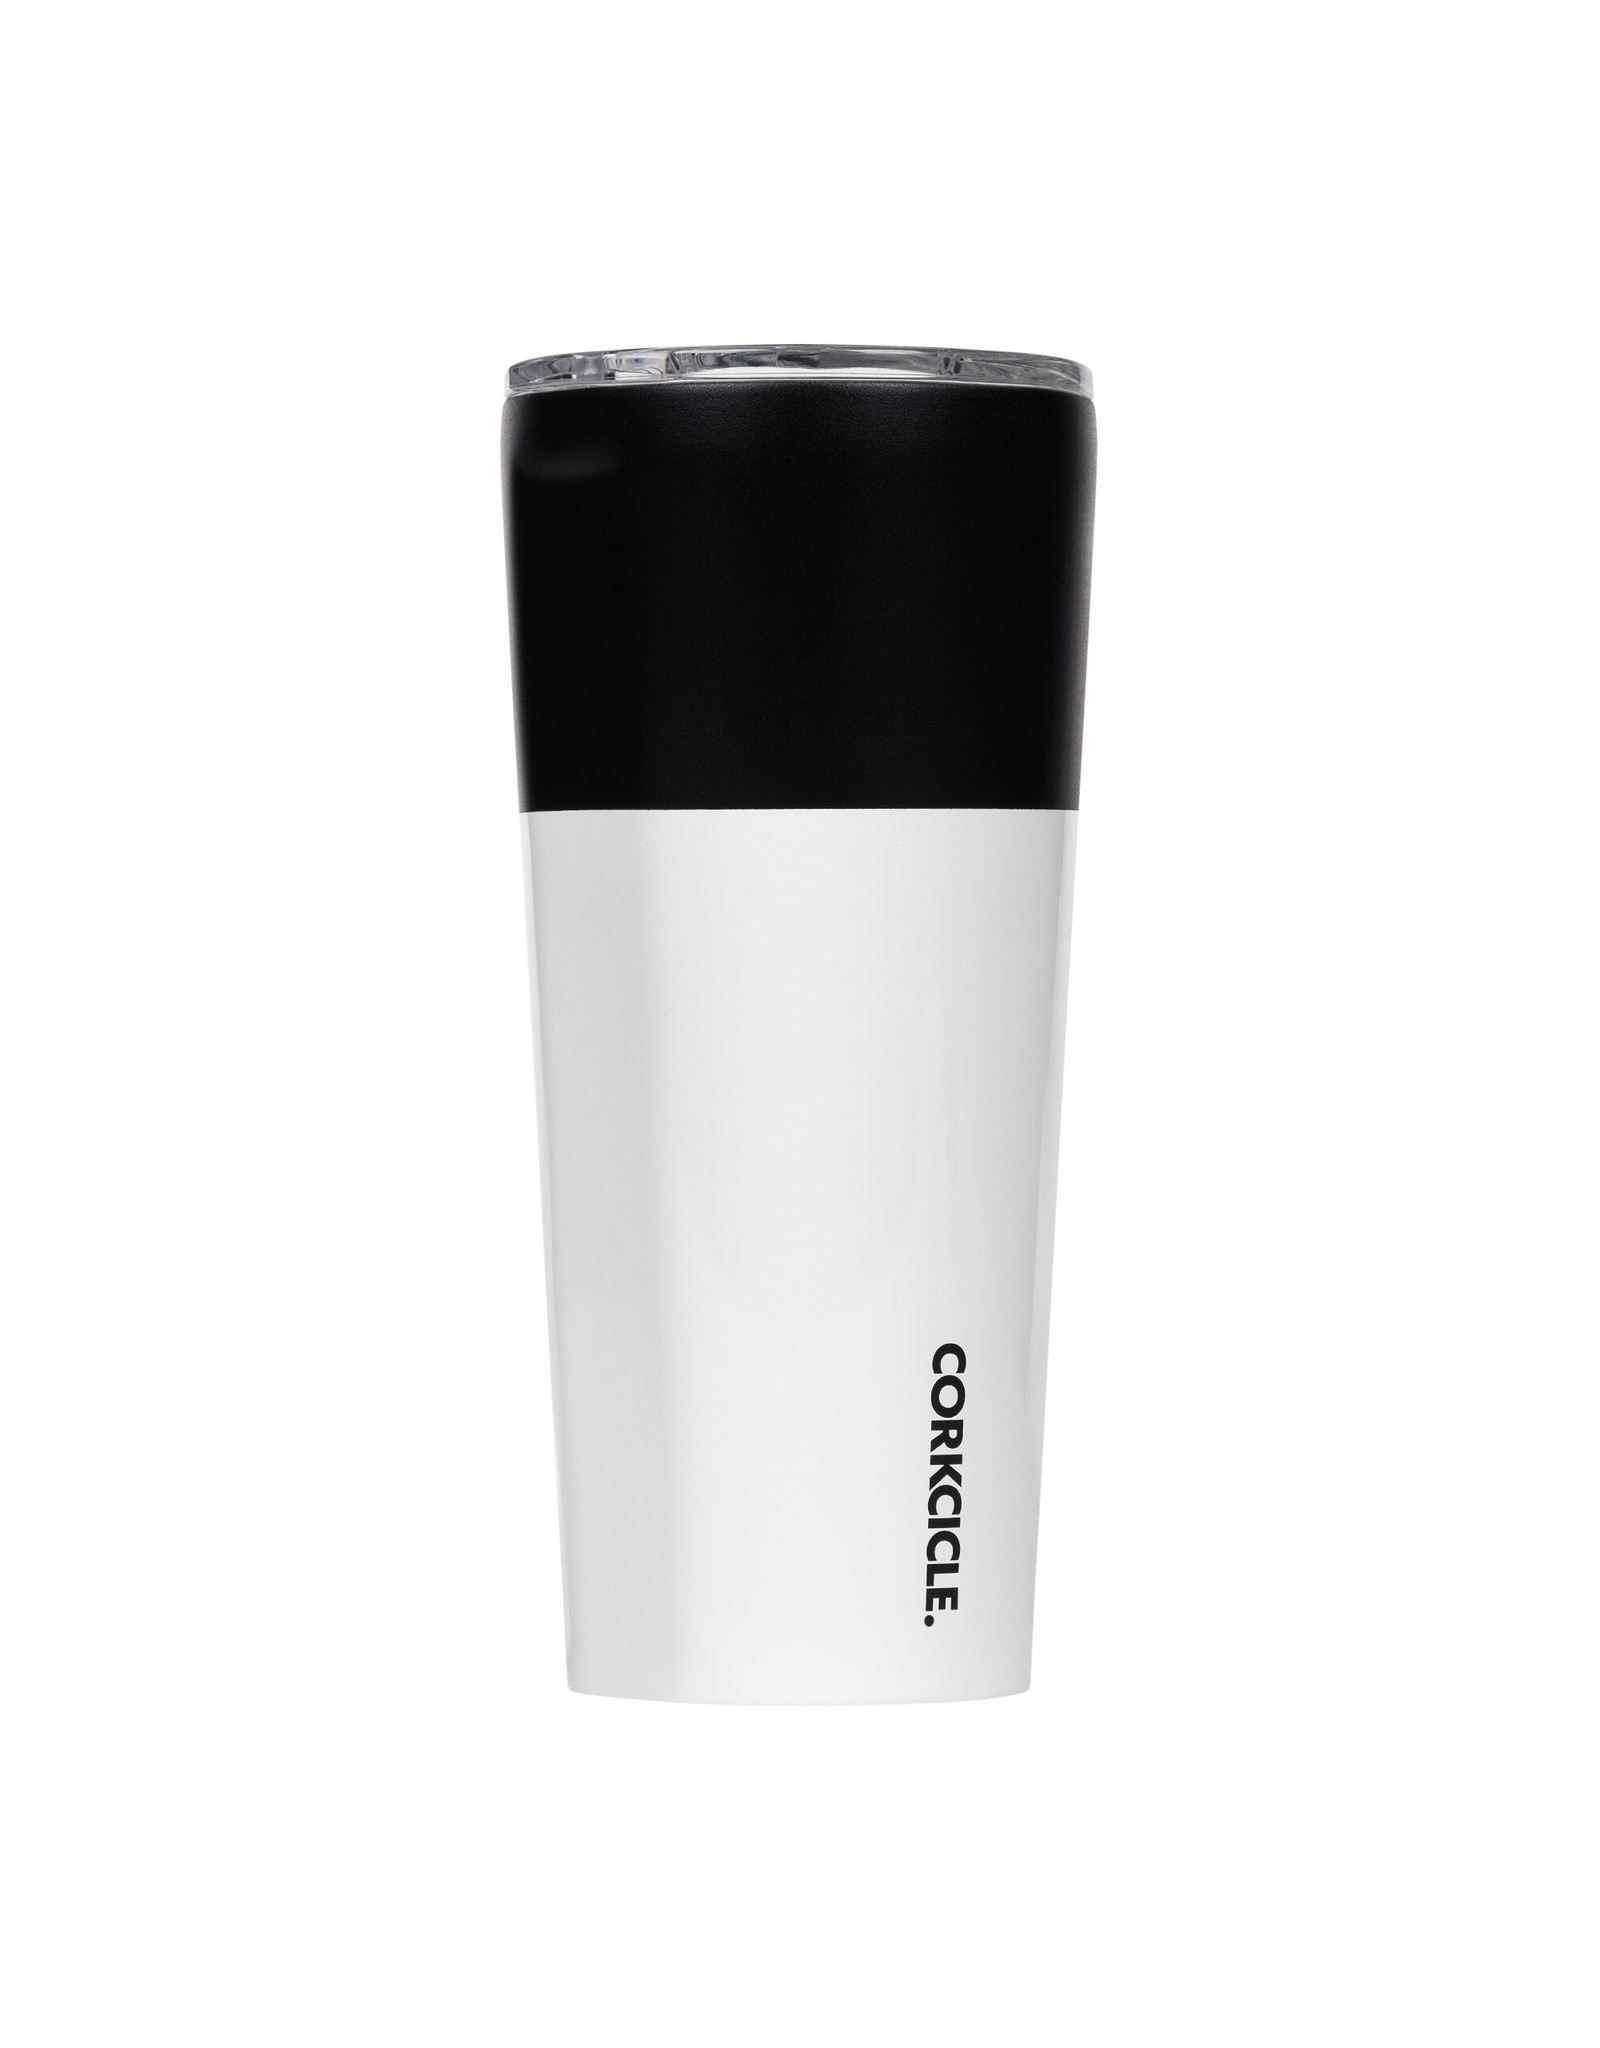 Corkcicle Tumbler - 24oz Color Block -  Modern Black